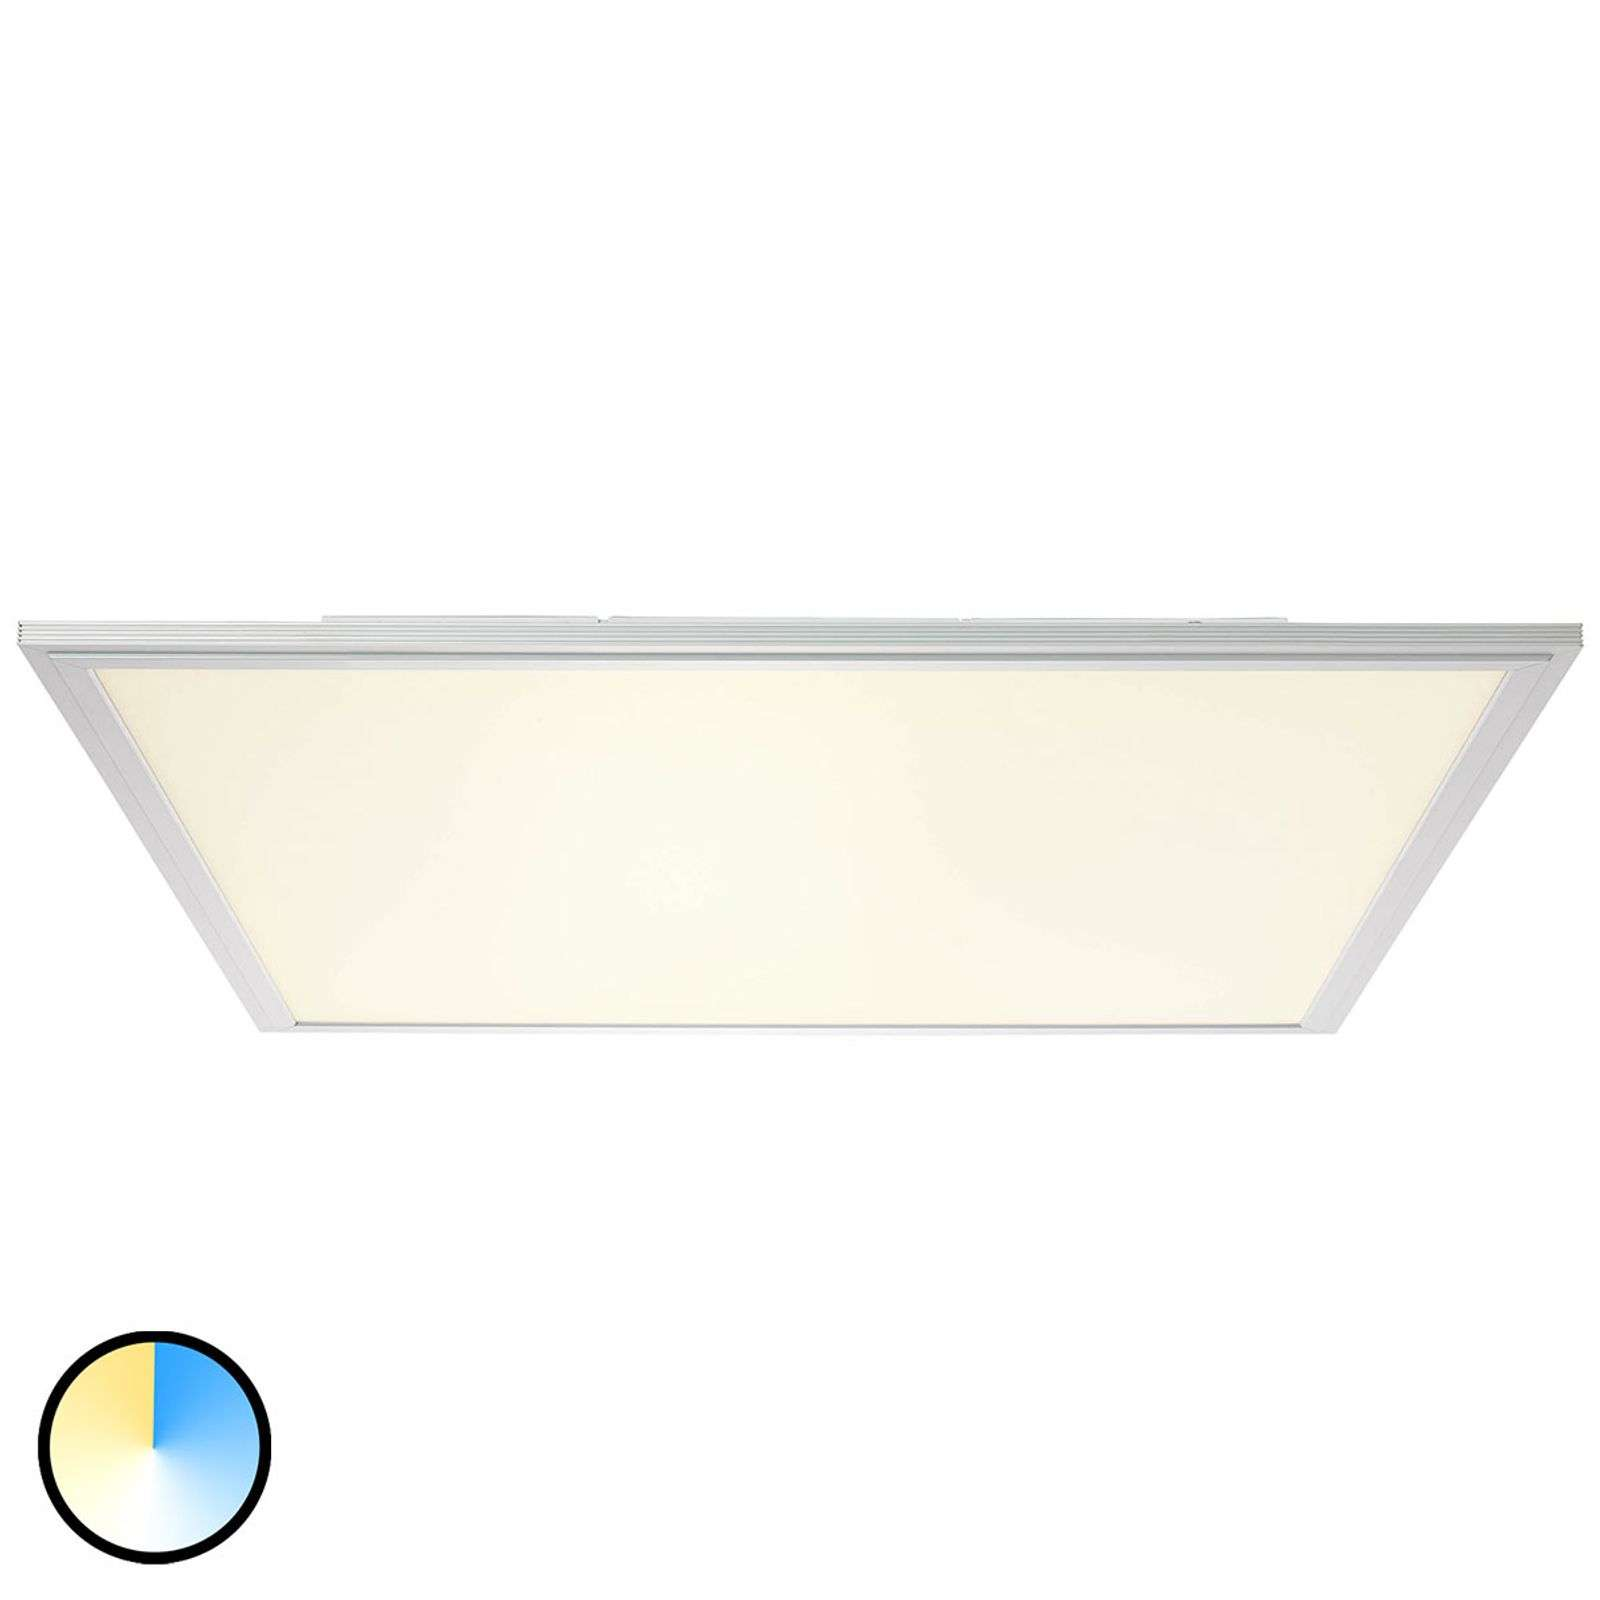 Brilliant WiZ LED plafondlamp Flat - 60 cm